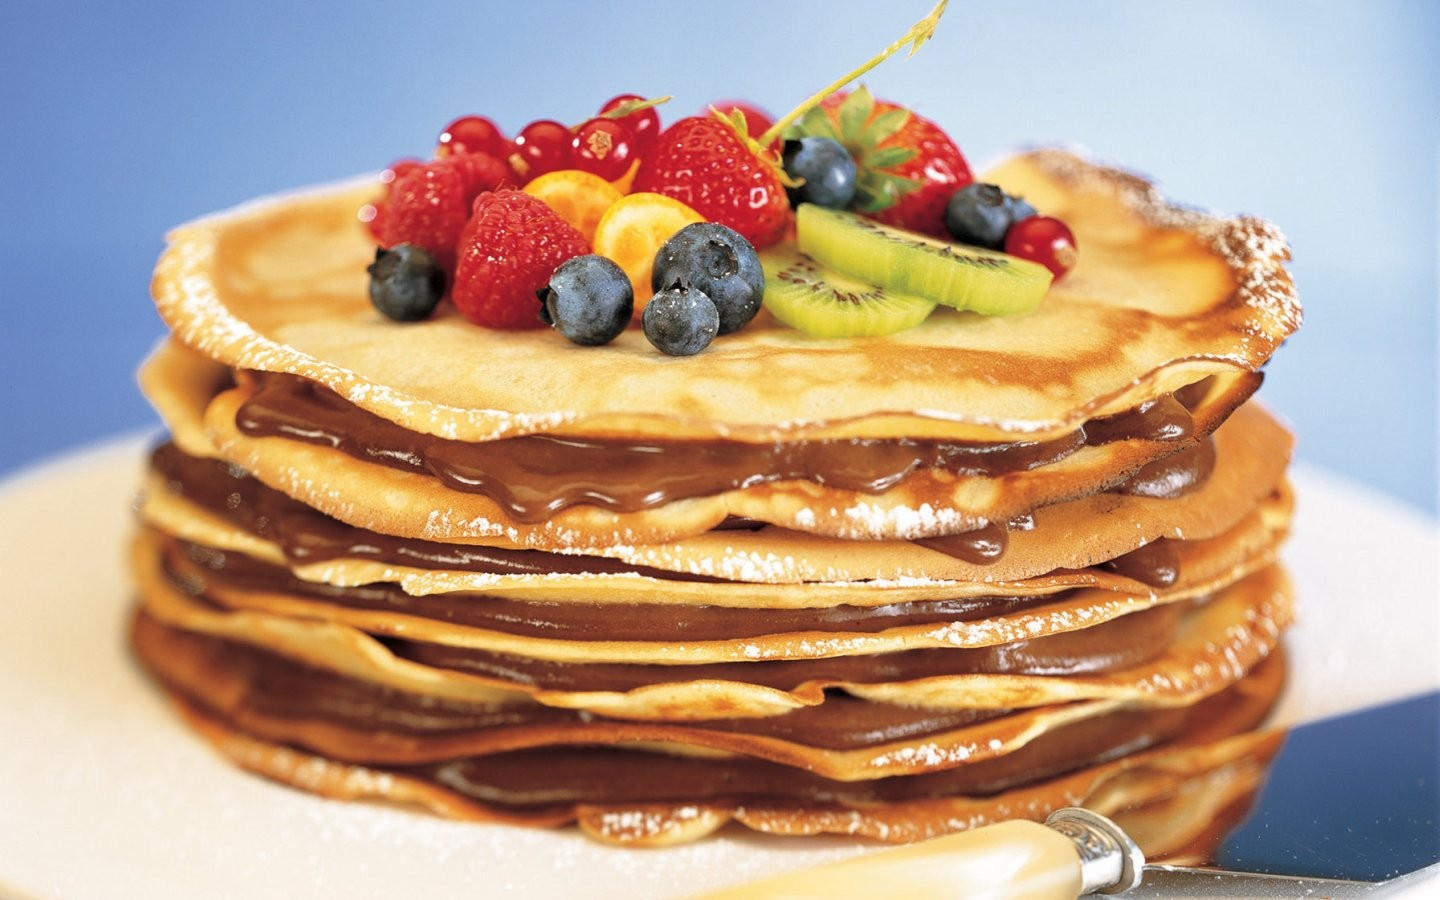 General 1440x900 food berries pancakes breakfast strawberries blueberries kiwi (fruit)